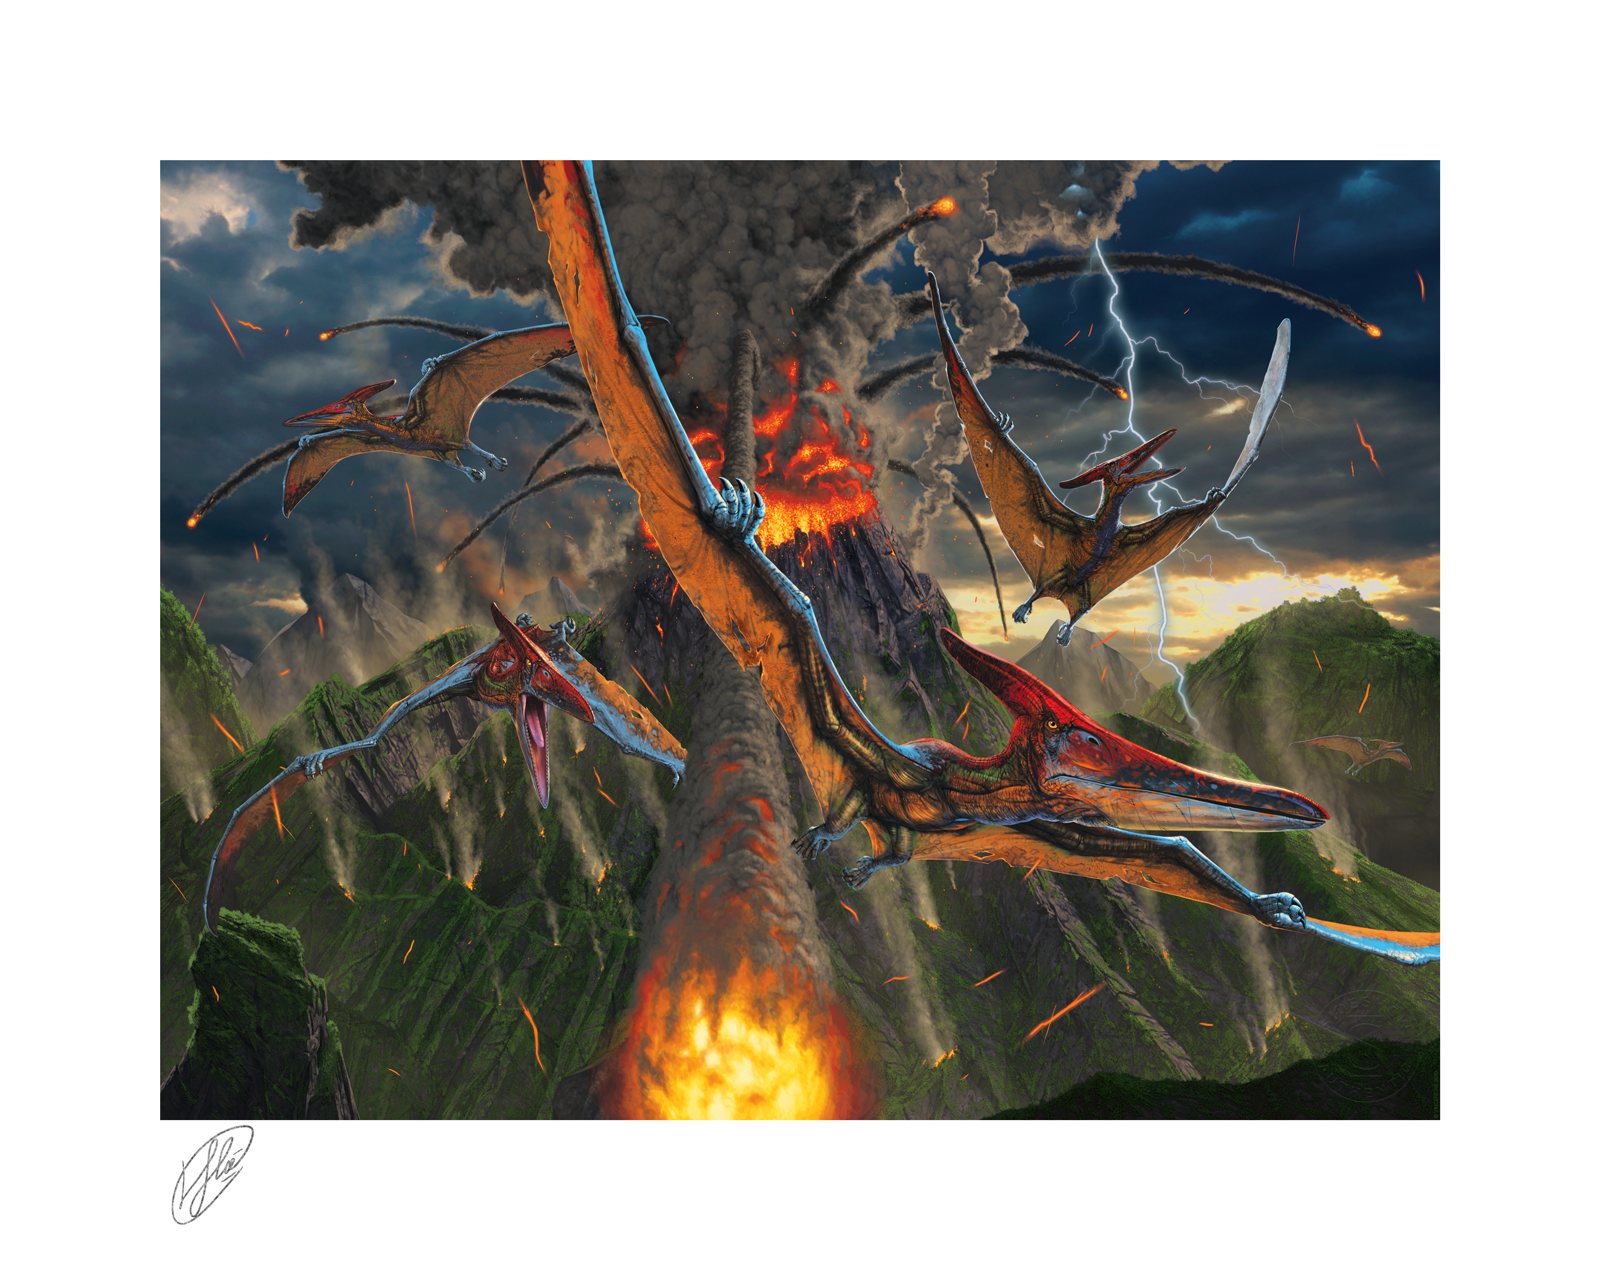 Sideshow Collectibles Eruption Art Print